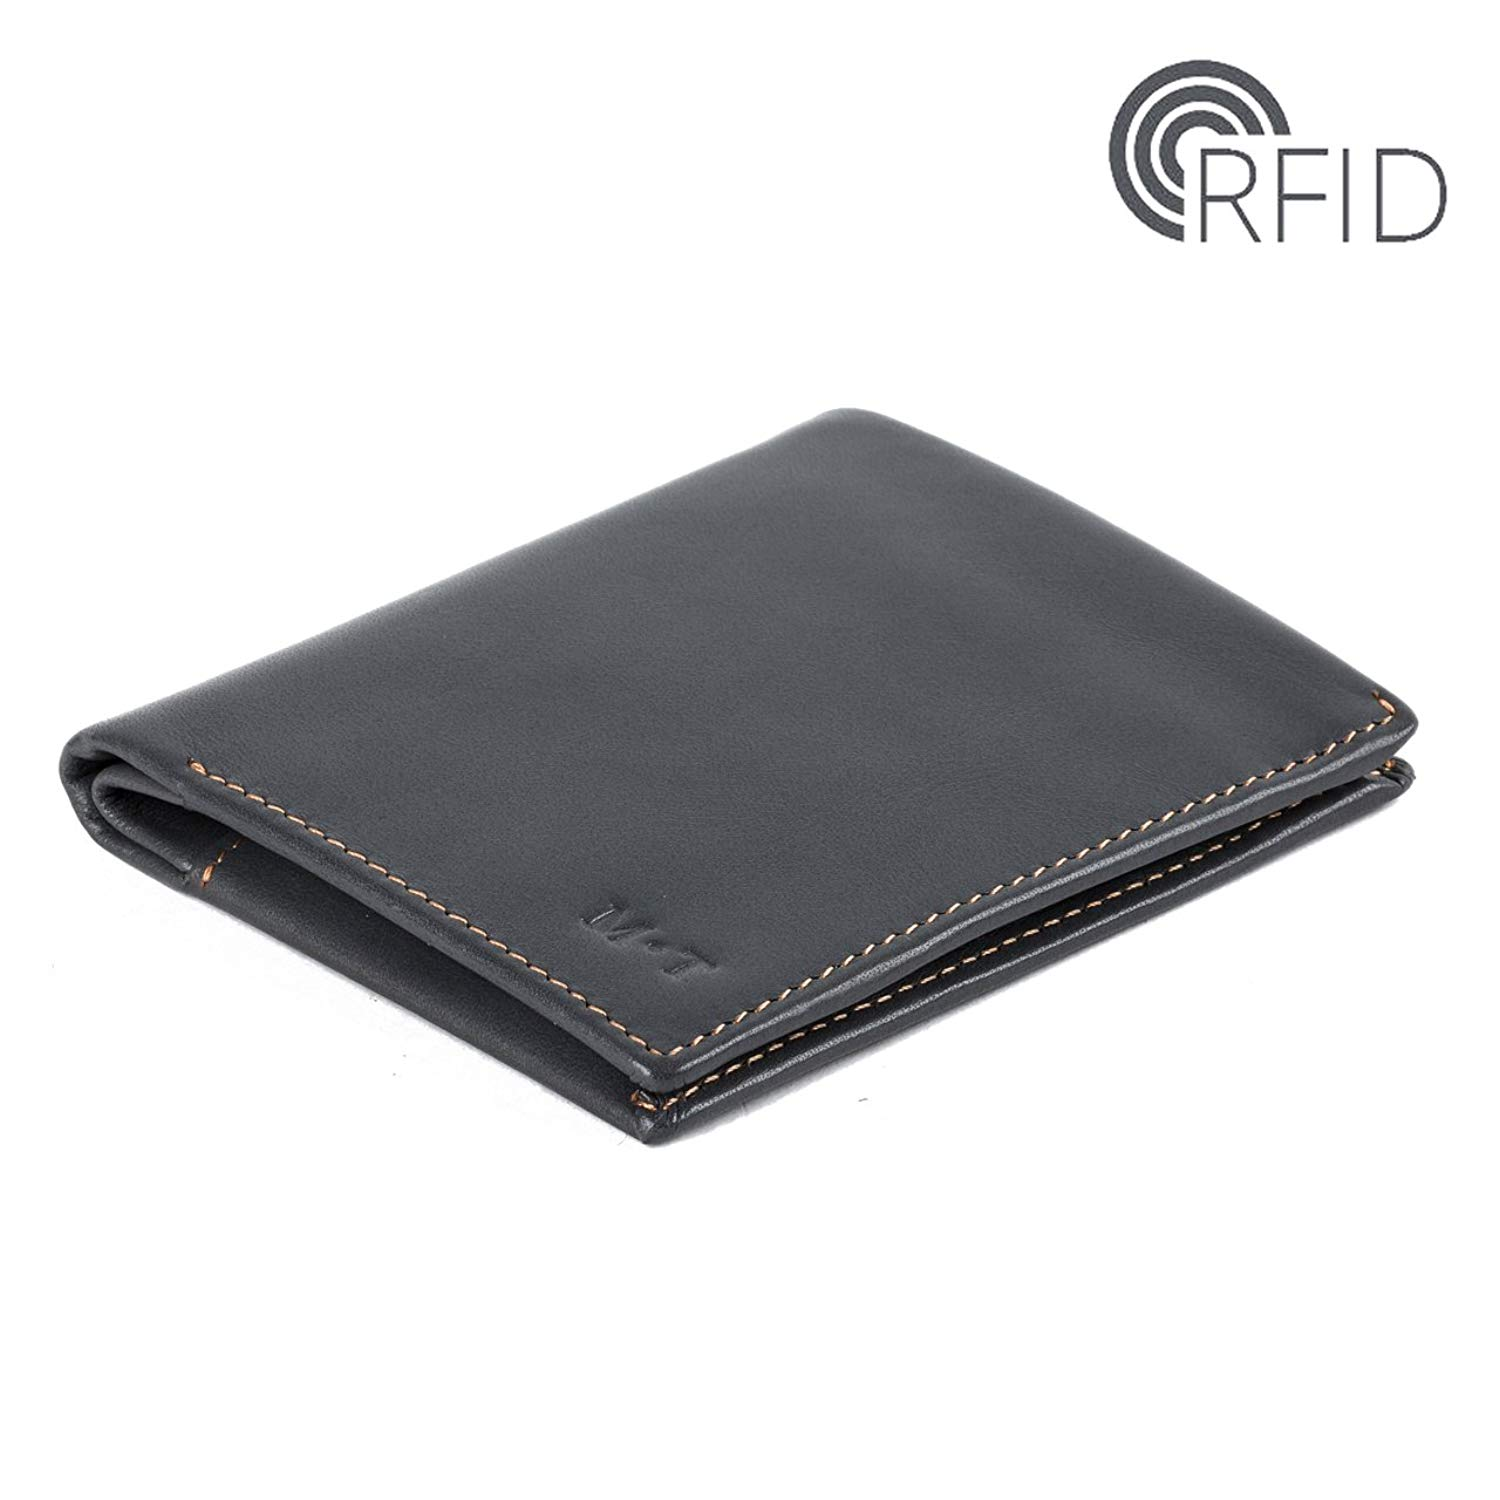 Italian Leather Slim RFID Wallet - Eco-friendly Leather Gentle Men's Slim Wallet with Coin Pocket,SD Card Slot